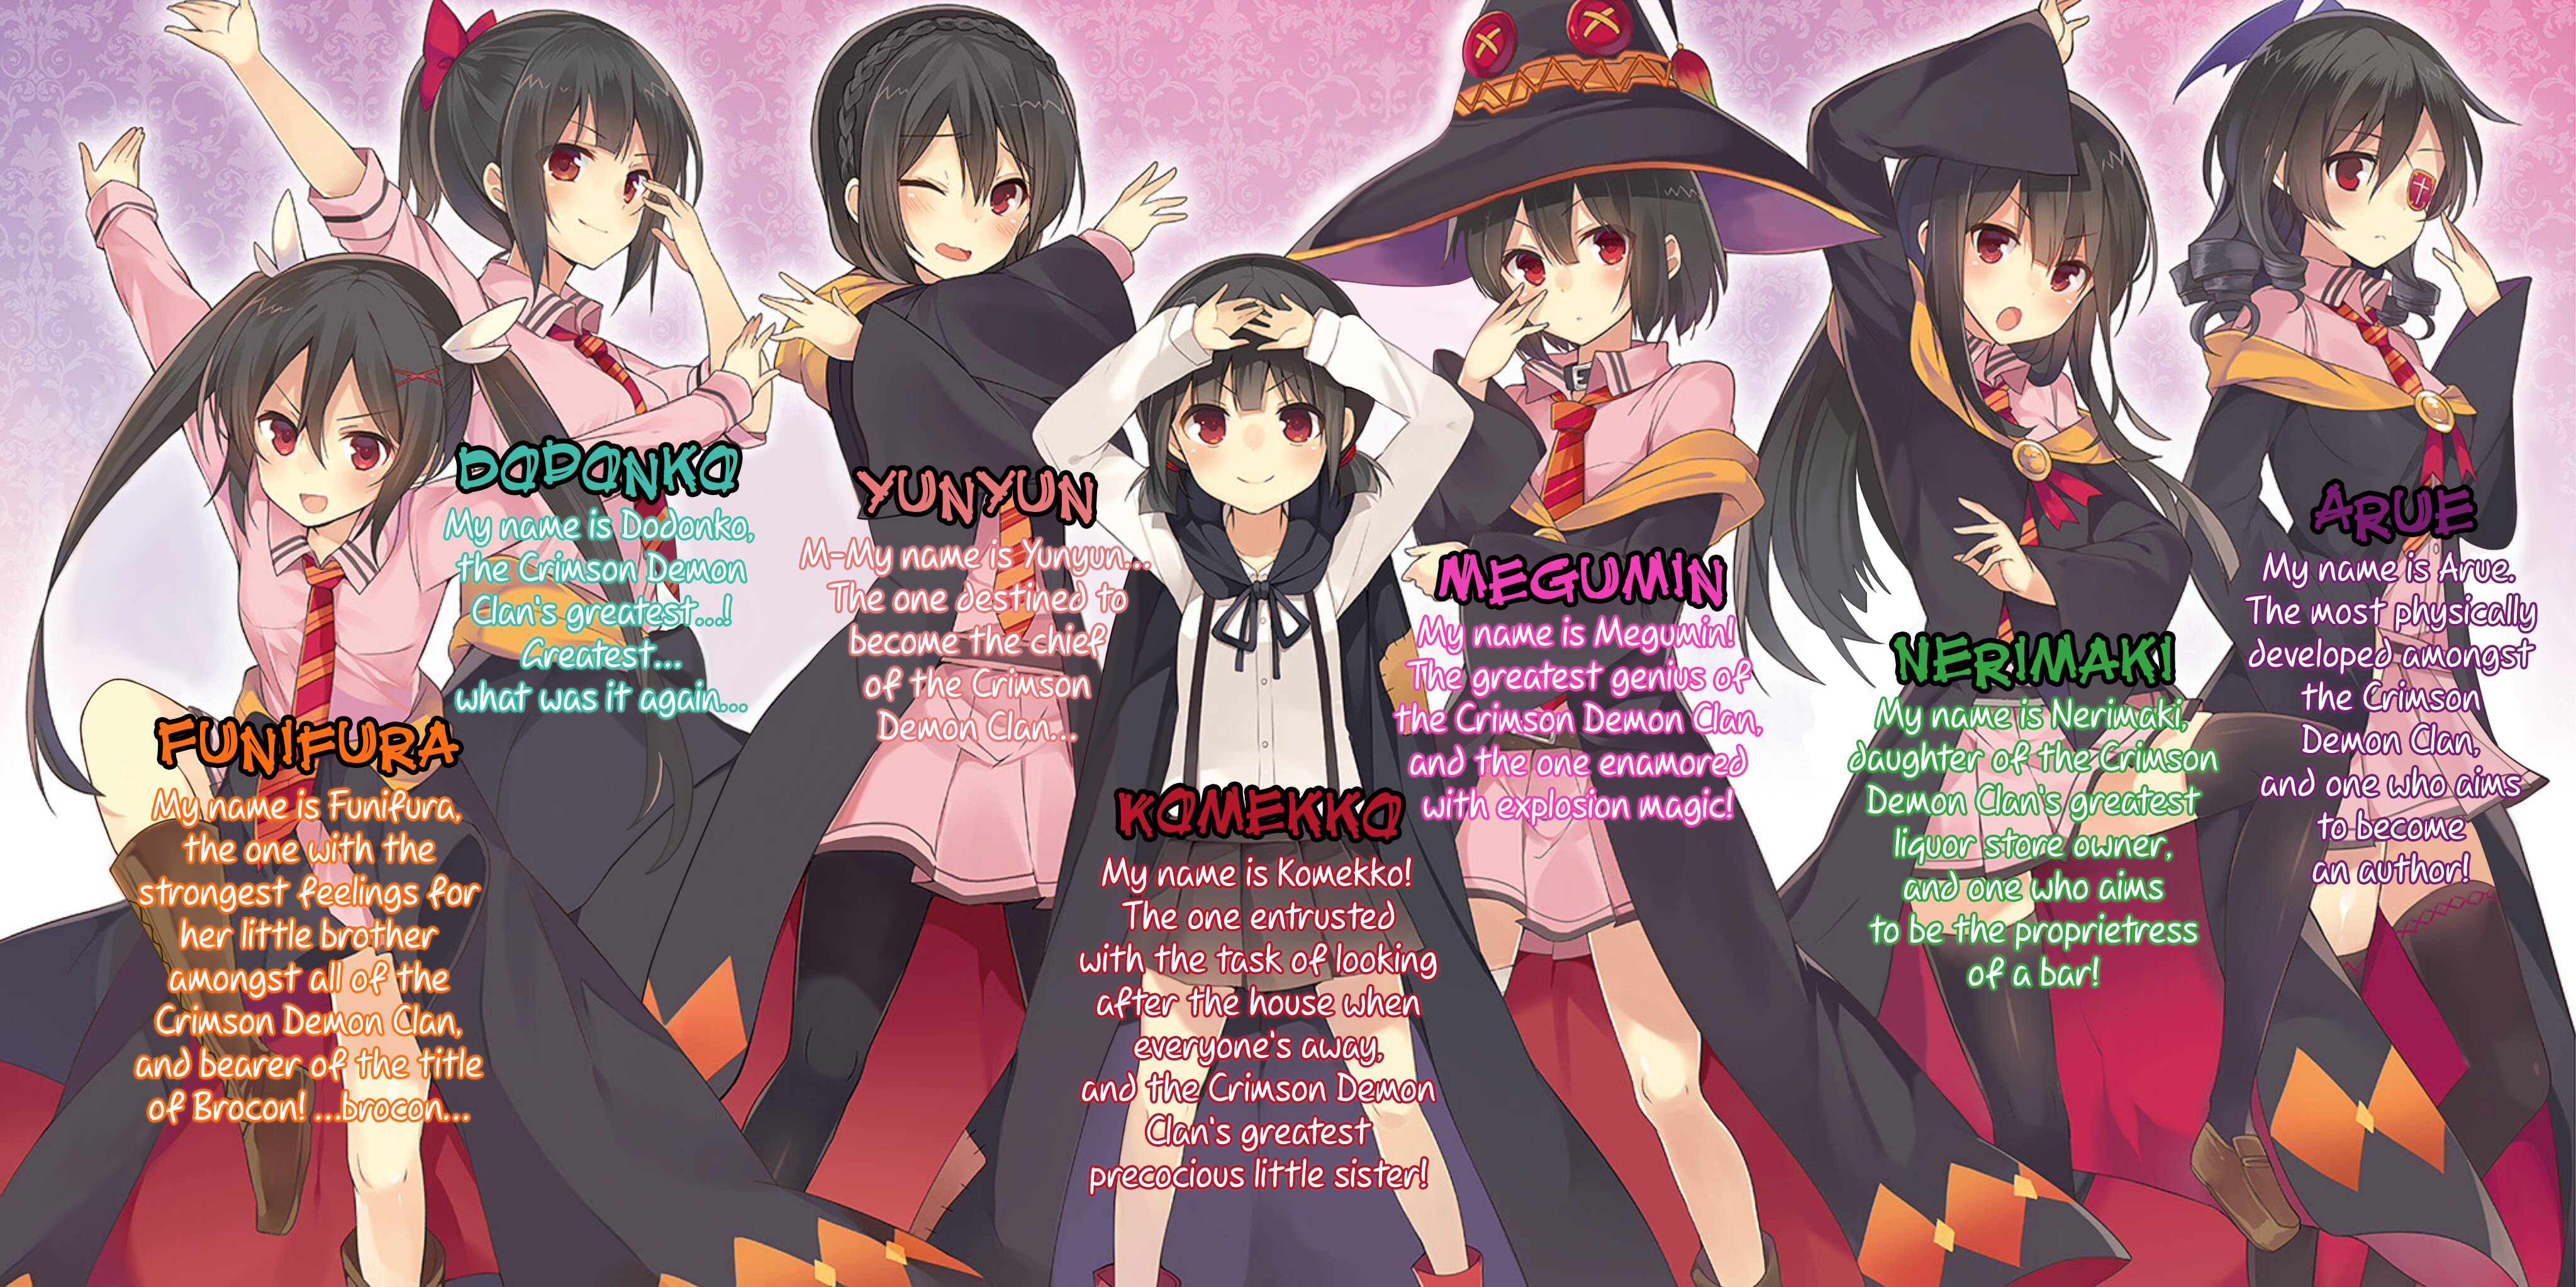 Explosion Spinoff 1 Prologue Megumin S Turn Cgtranslations